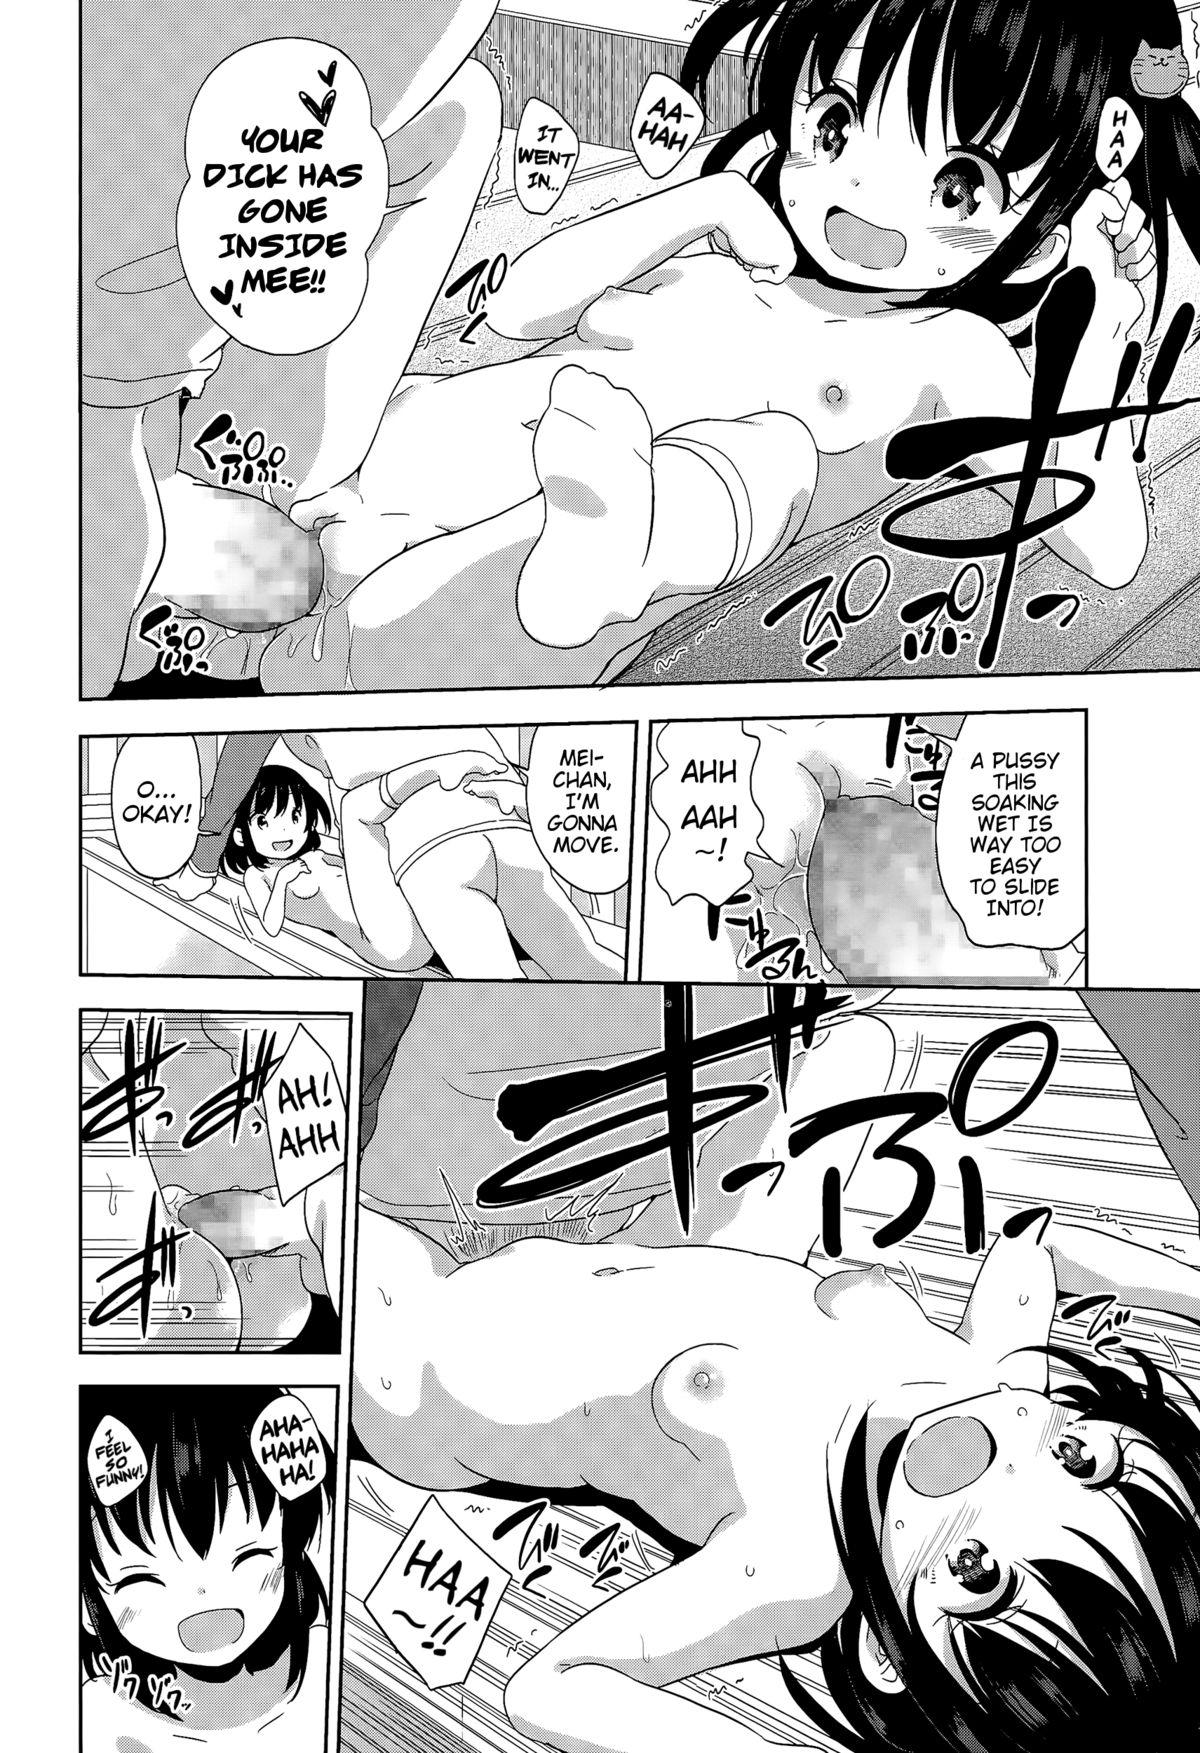 [Fuyuno Mikan] Mei-chan to Issho | Together With Mei-chan (COMIC LO 2015-07) [English] {Mistvern} 7